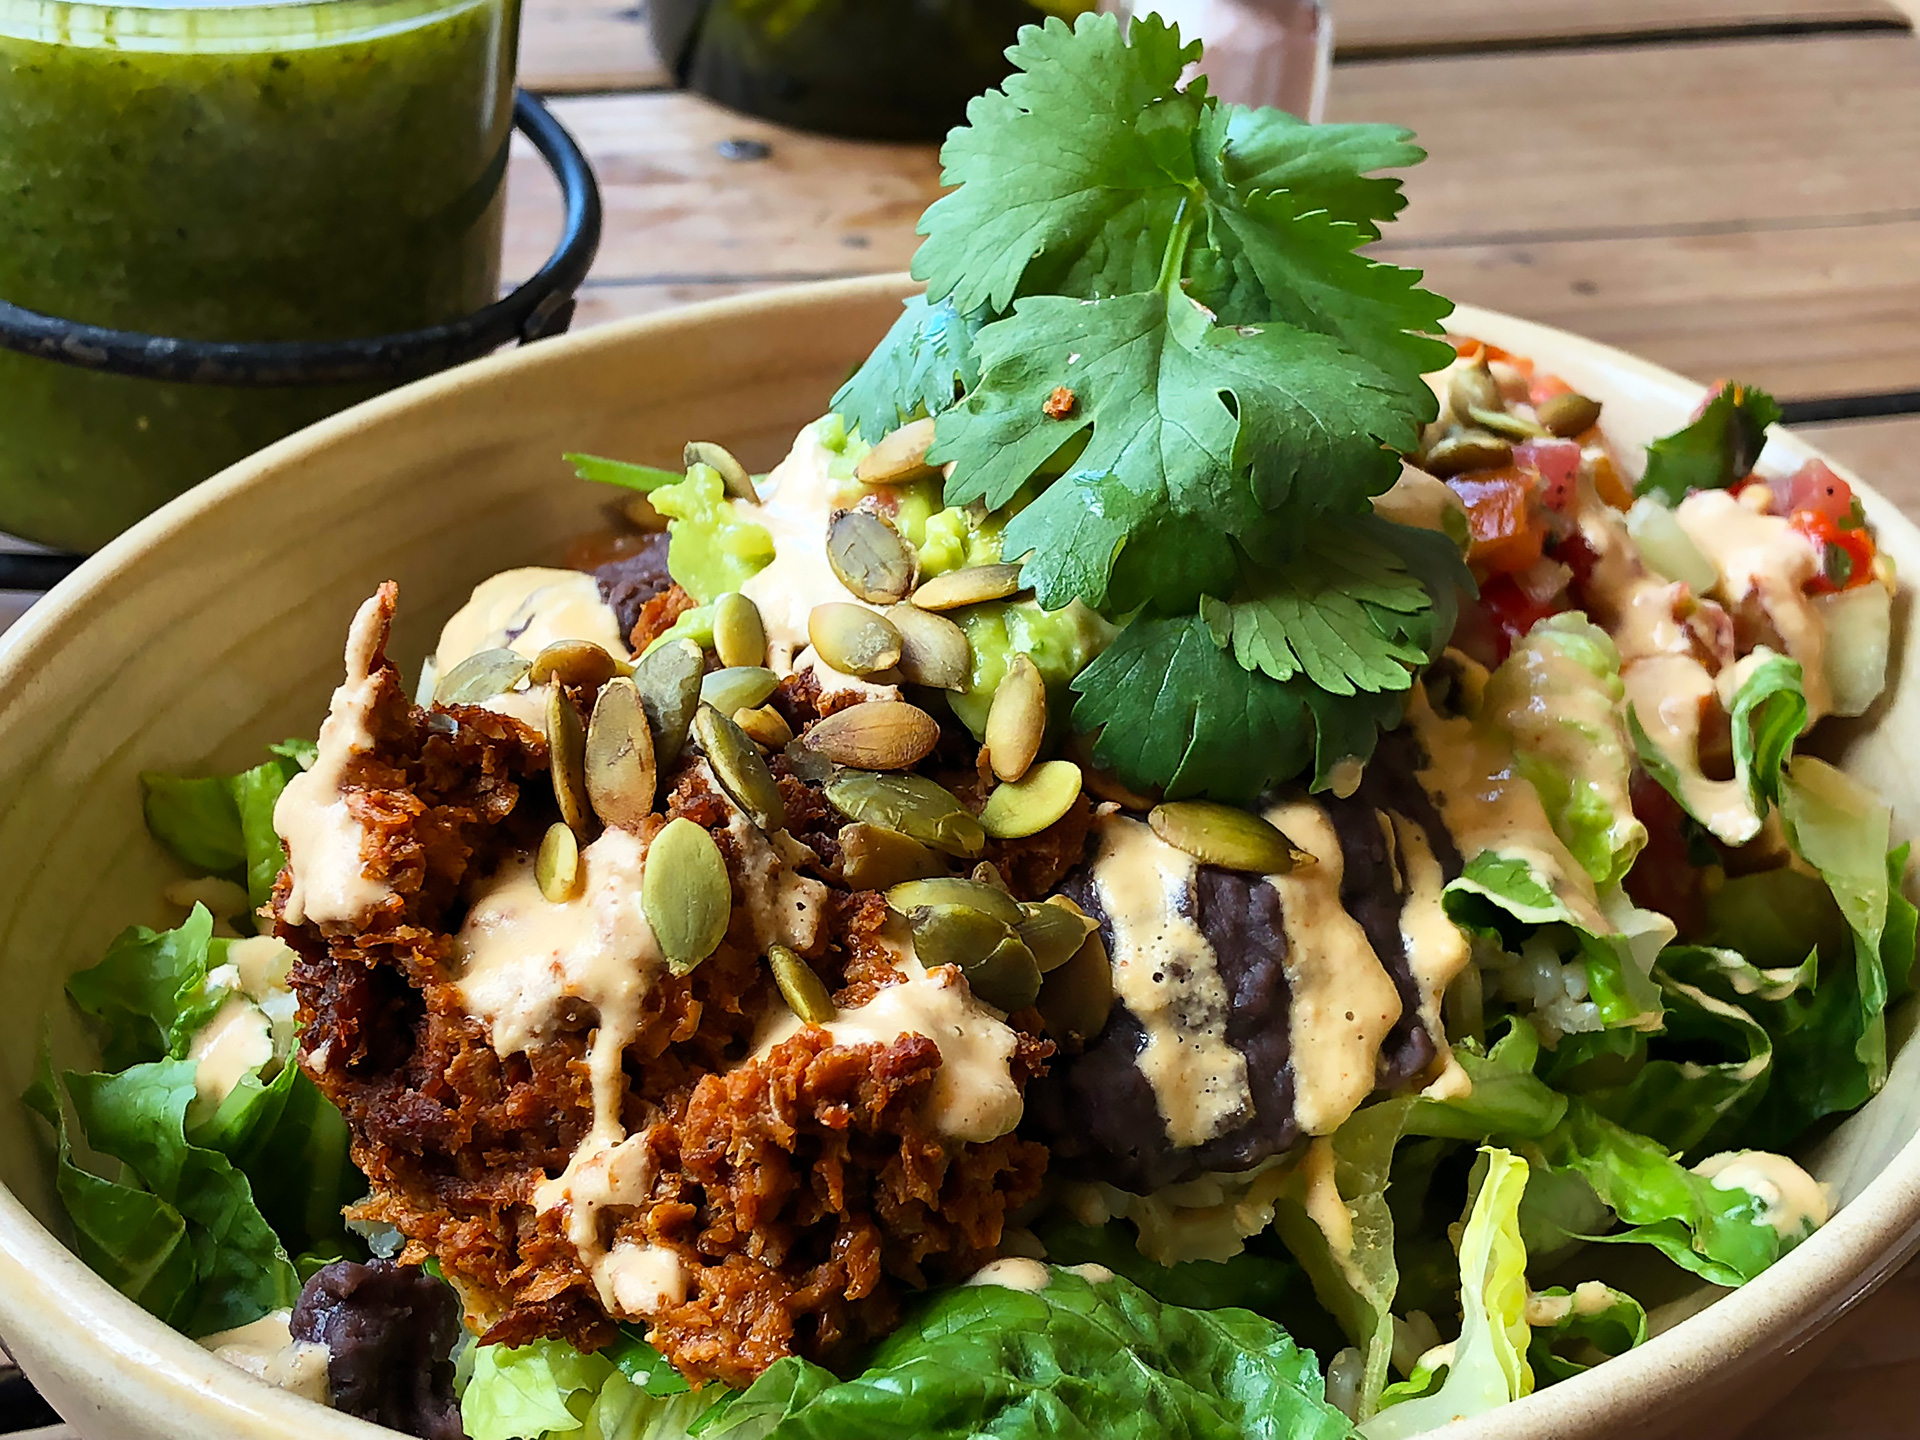 Bowl Uno: Tempeh chorizo, black beans, guacamole, brown rice and pico de gallo served on a bed of romaine and topped with nacho cashew cheese and pepitas. ($15)